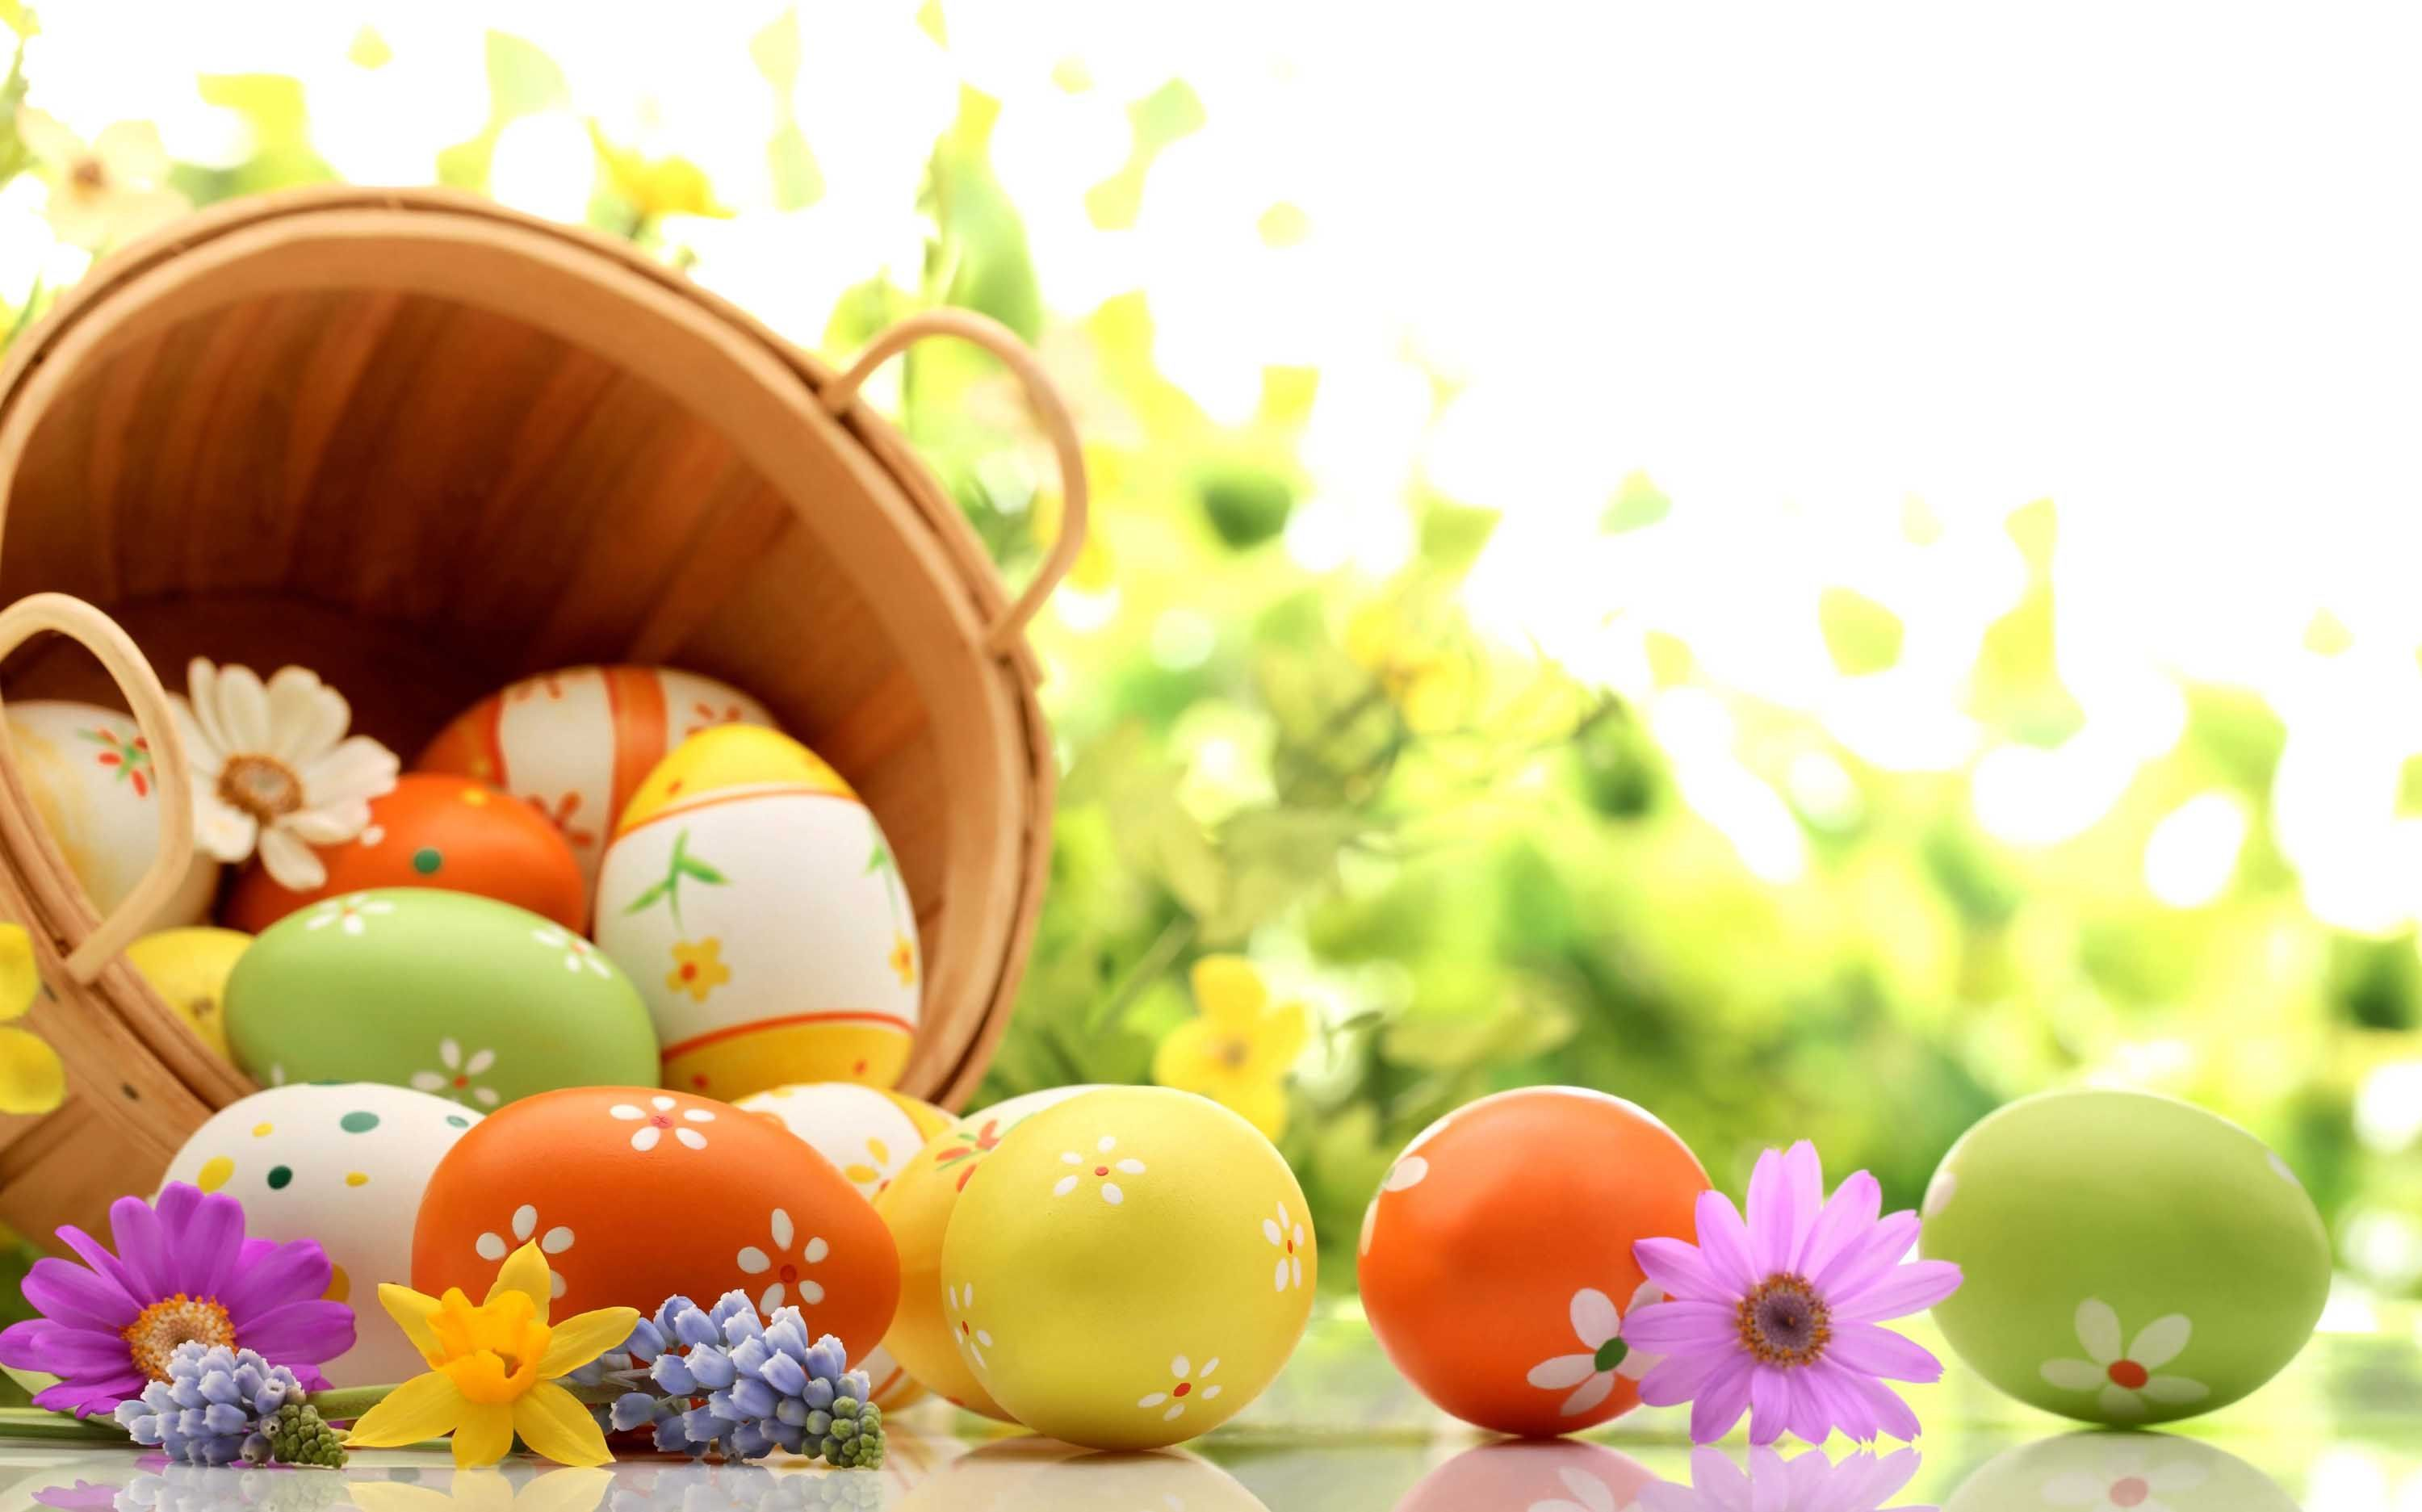 Holidays easter basket of eggs on green background wallpaper holidays easter basket of eggs on green background wallpaper 5950x3715 cool pc wallpapers negle Image collections